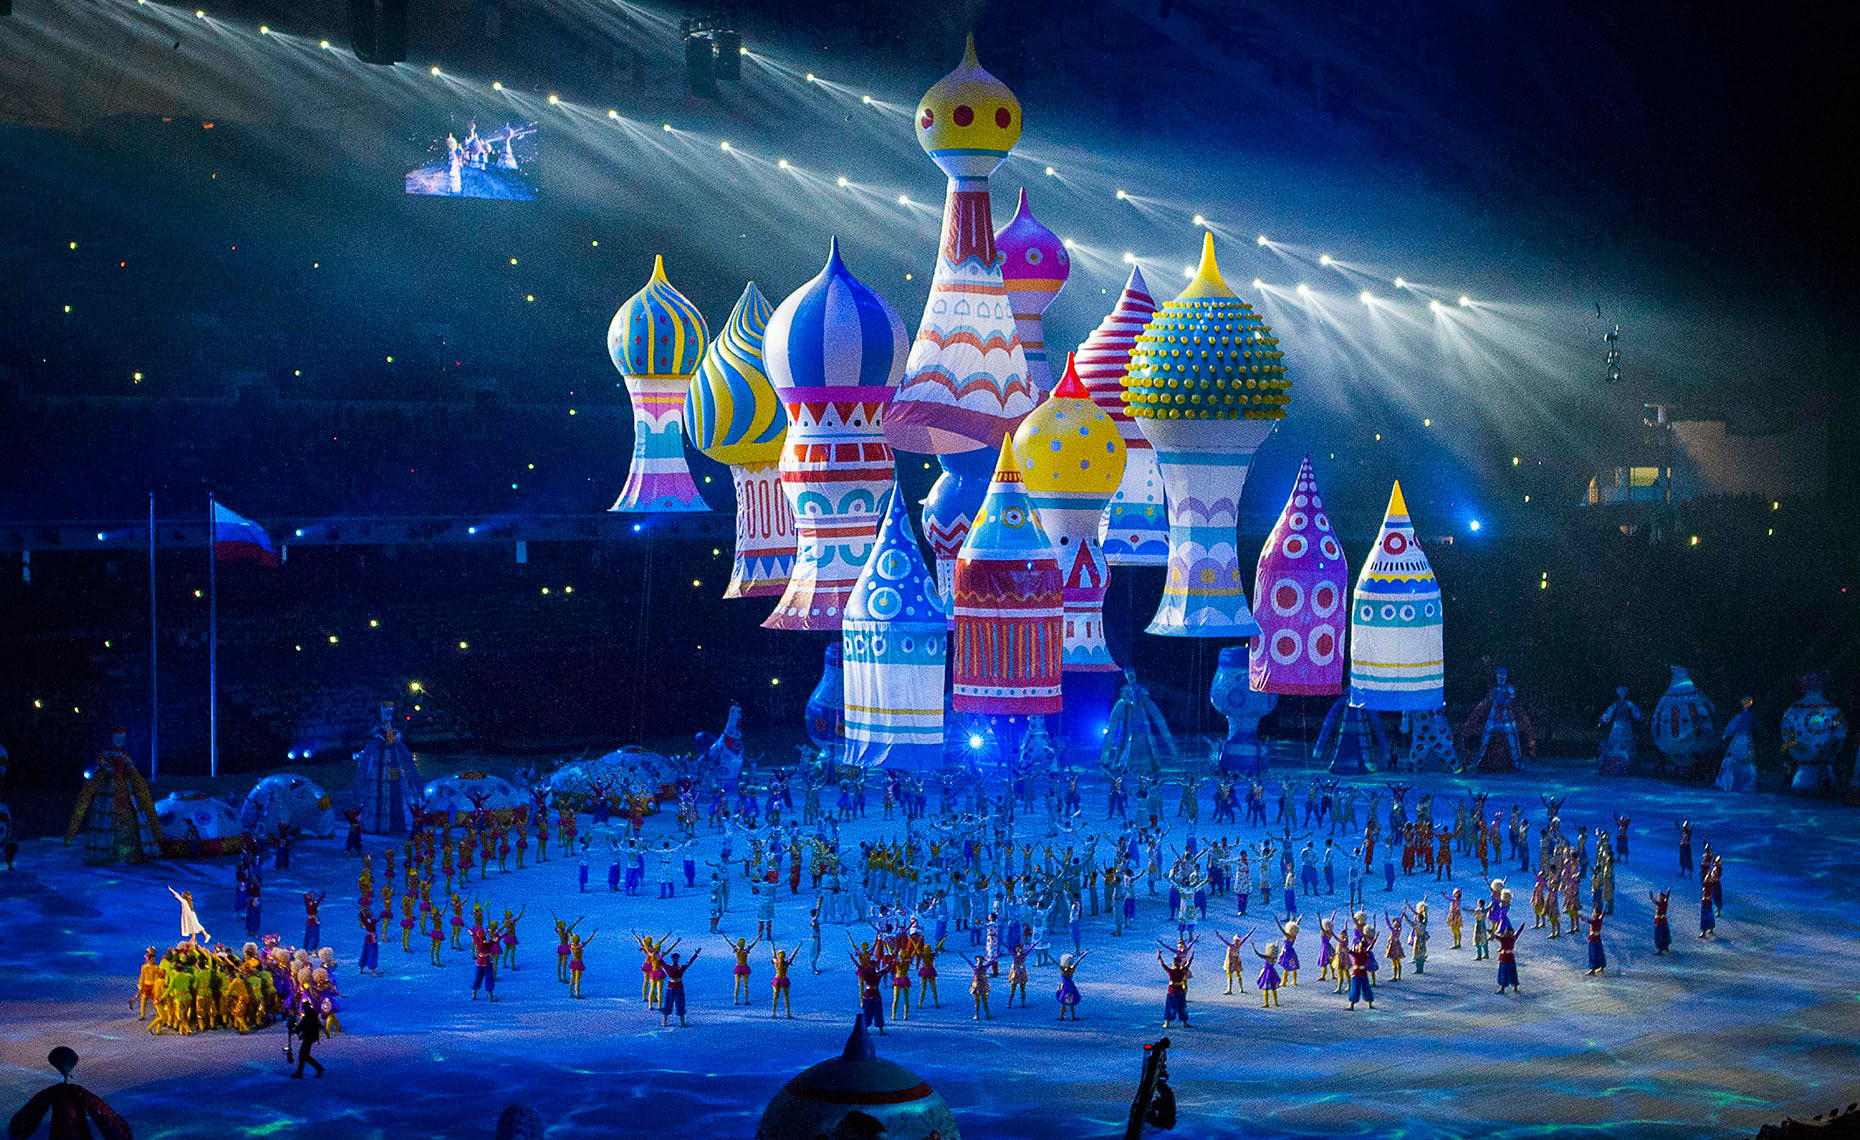 07_Sochi_Olympics_Russia_Chris_Wellhausen